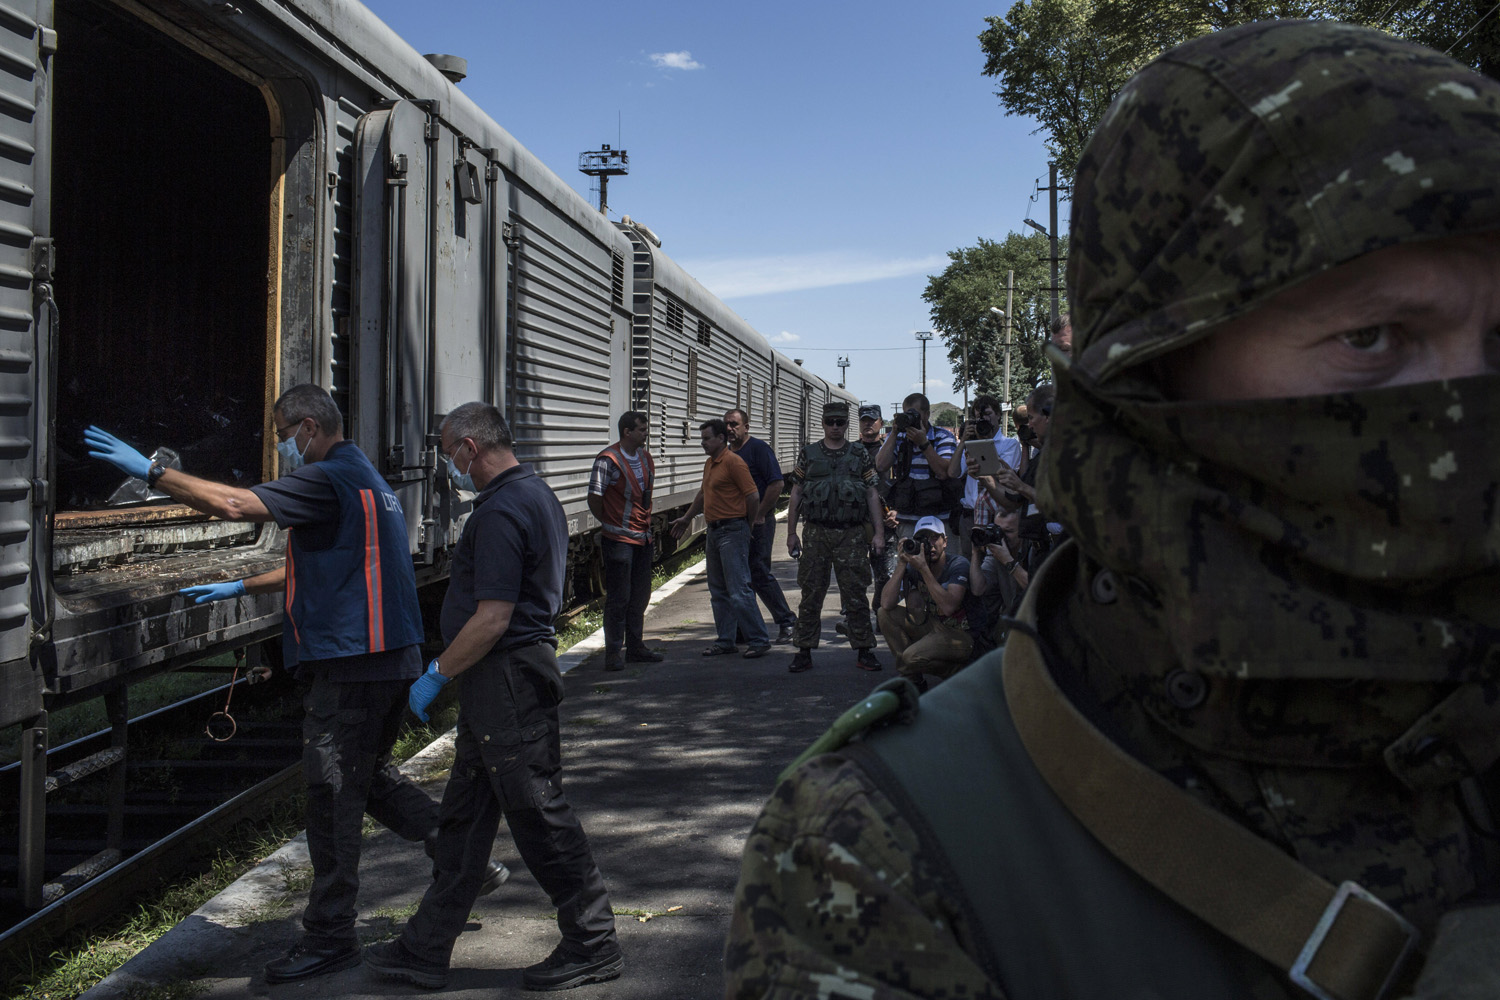 Jul. 21, 2014. Members of a Dutch forensics team prepare to inspect rail cars where the bodies of the Malaysia Airlines Flight 17 crash victims were being held in Torez, Ukraine.